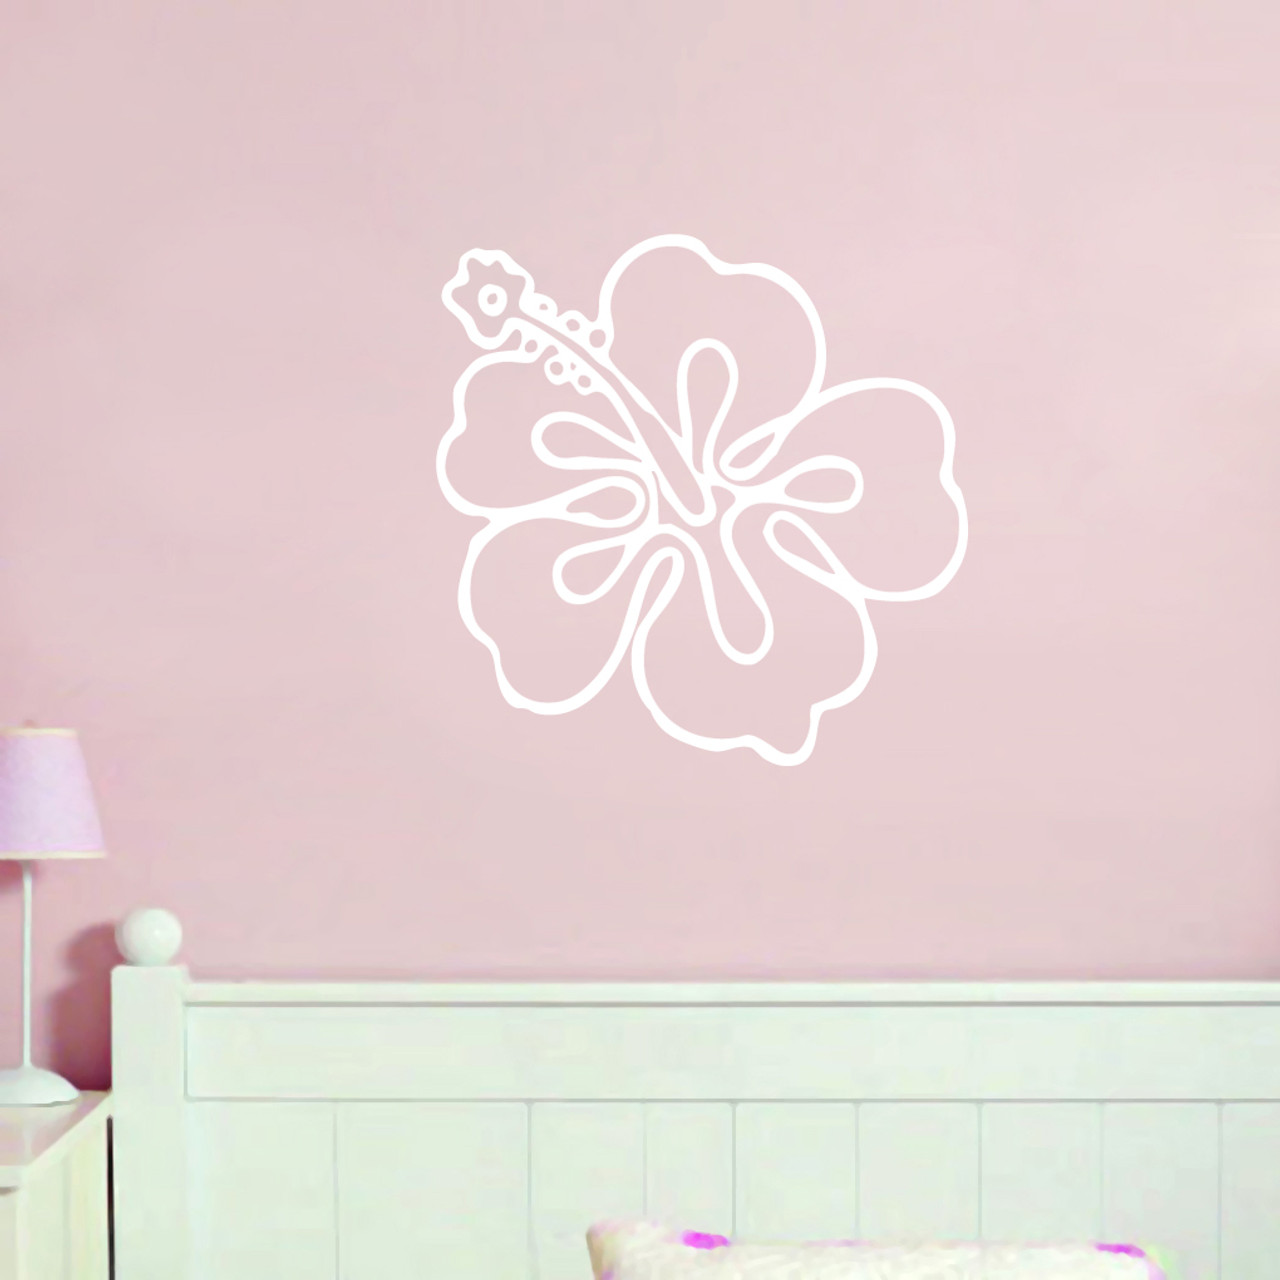 Hibiscus Flower Outline Wall Decals Wall Decor Stickers